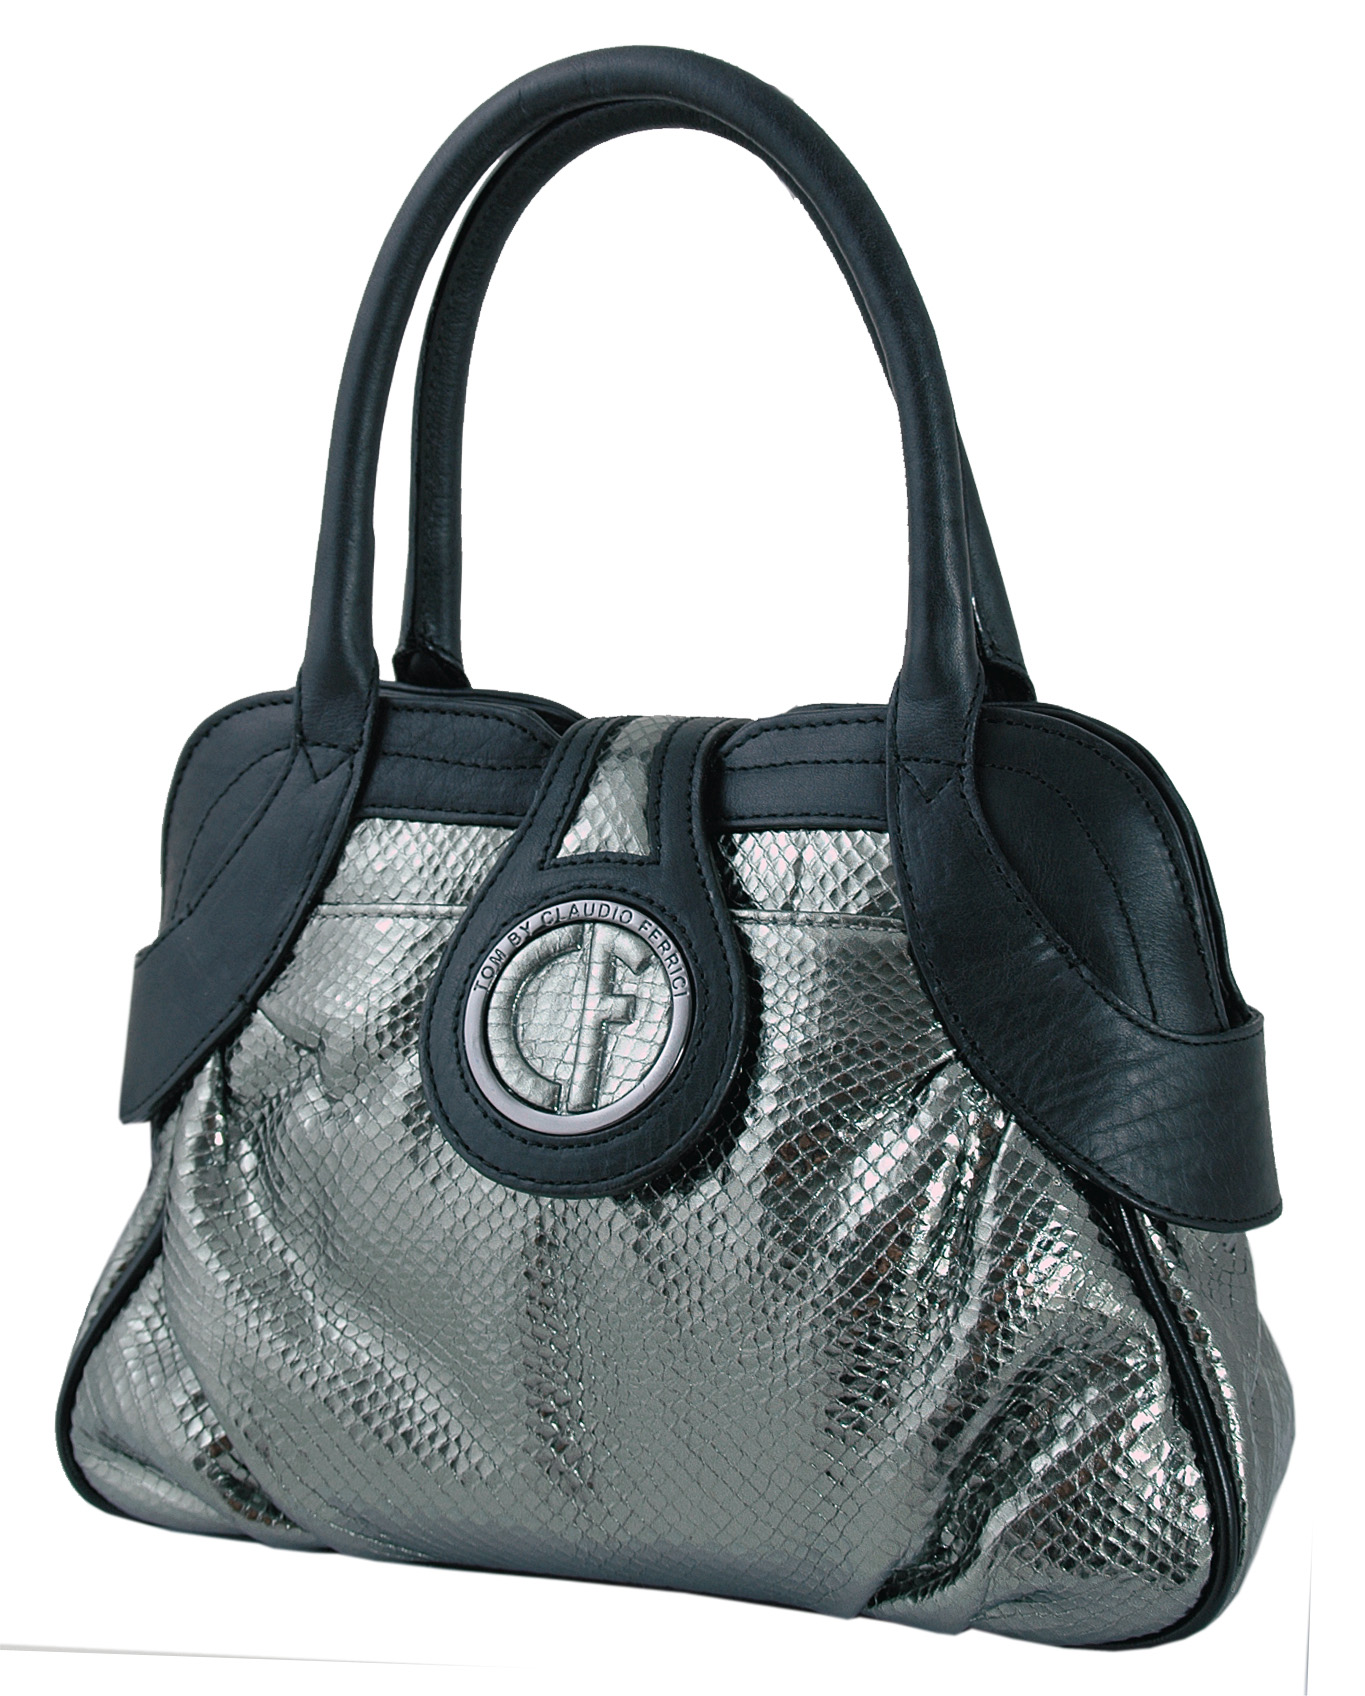 De Van Lifestylelady Christmas Speciale Tas Collection Tom nl k8nO0PXw